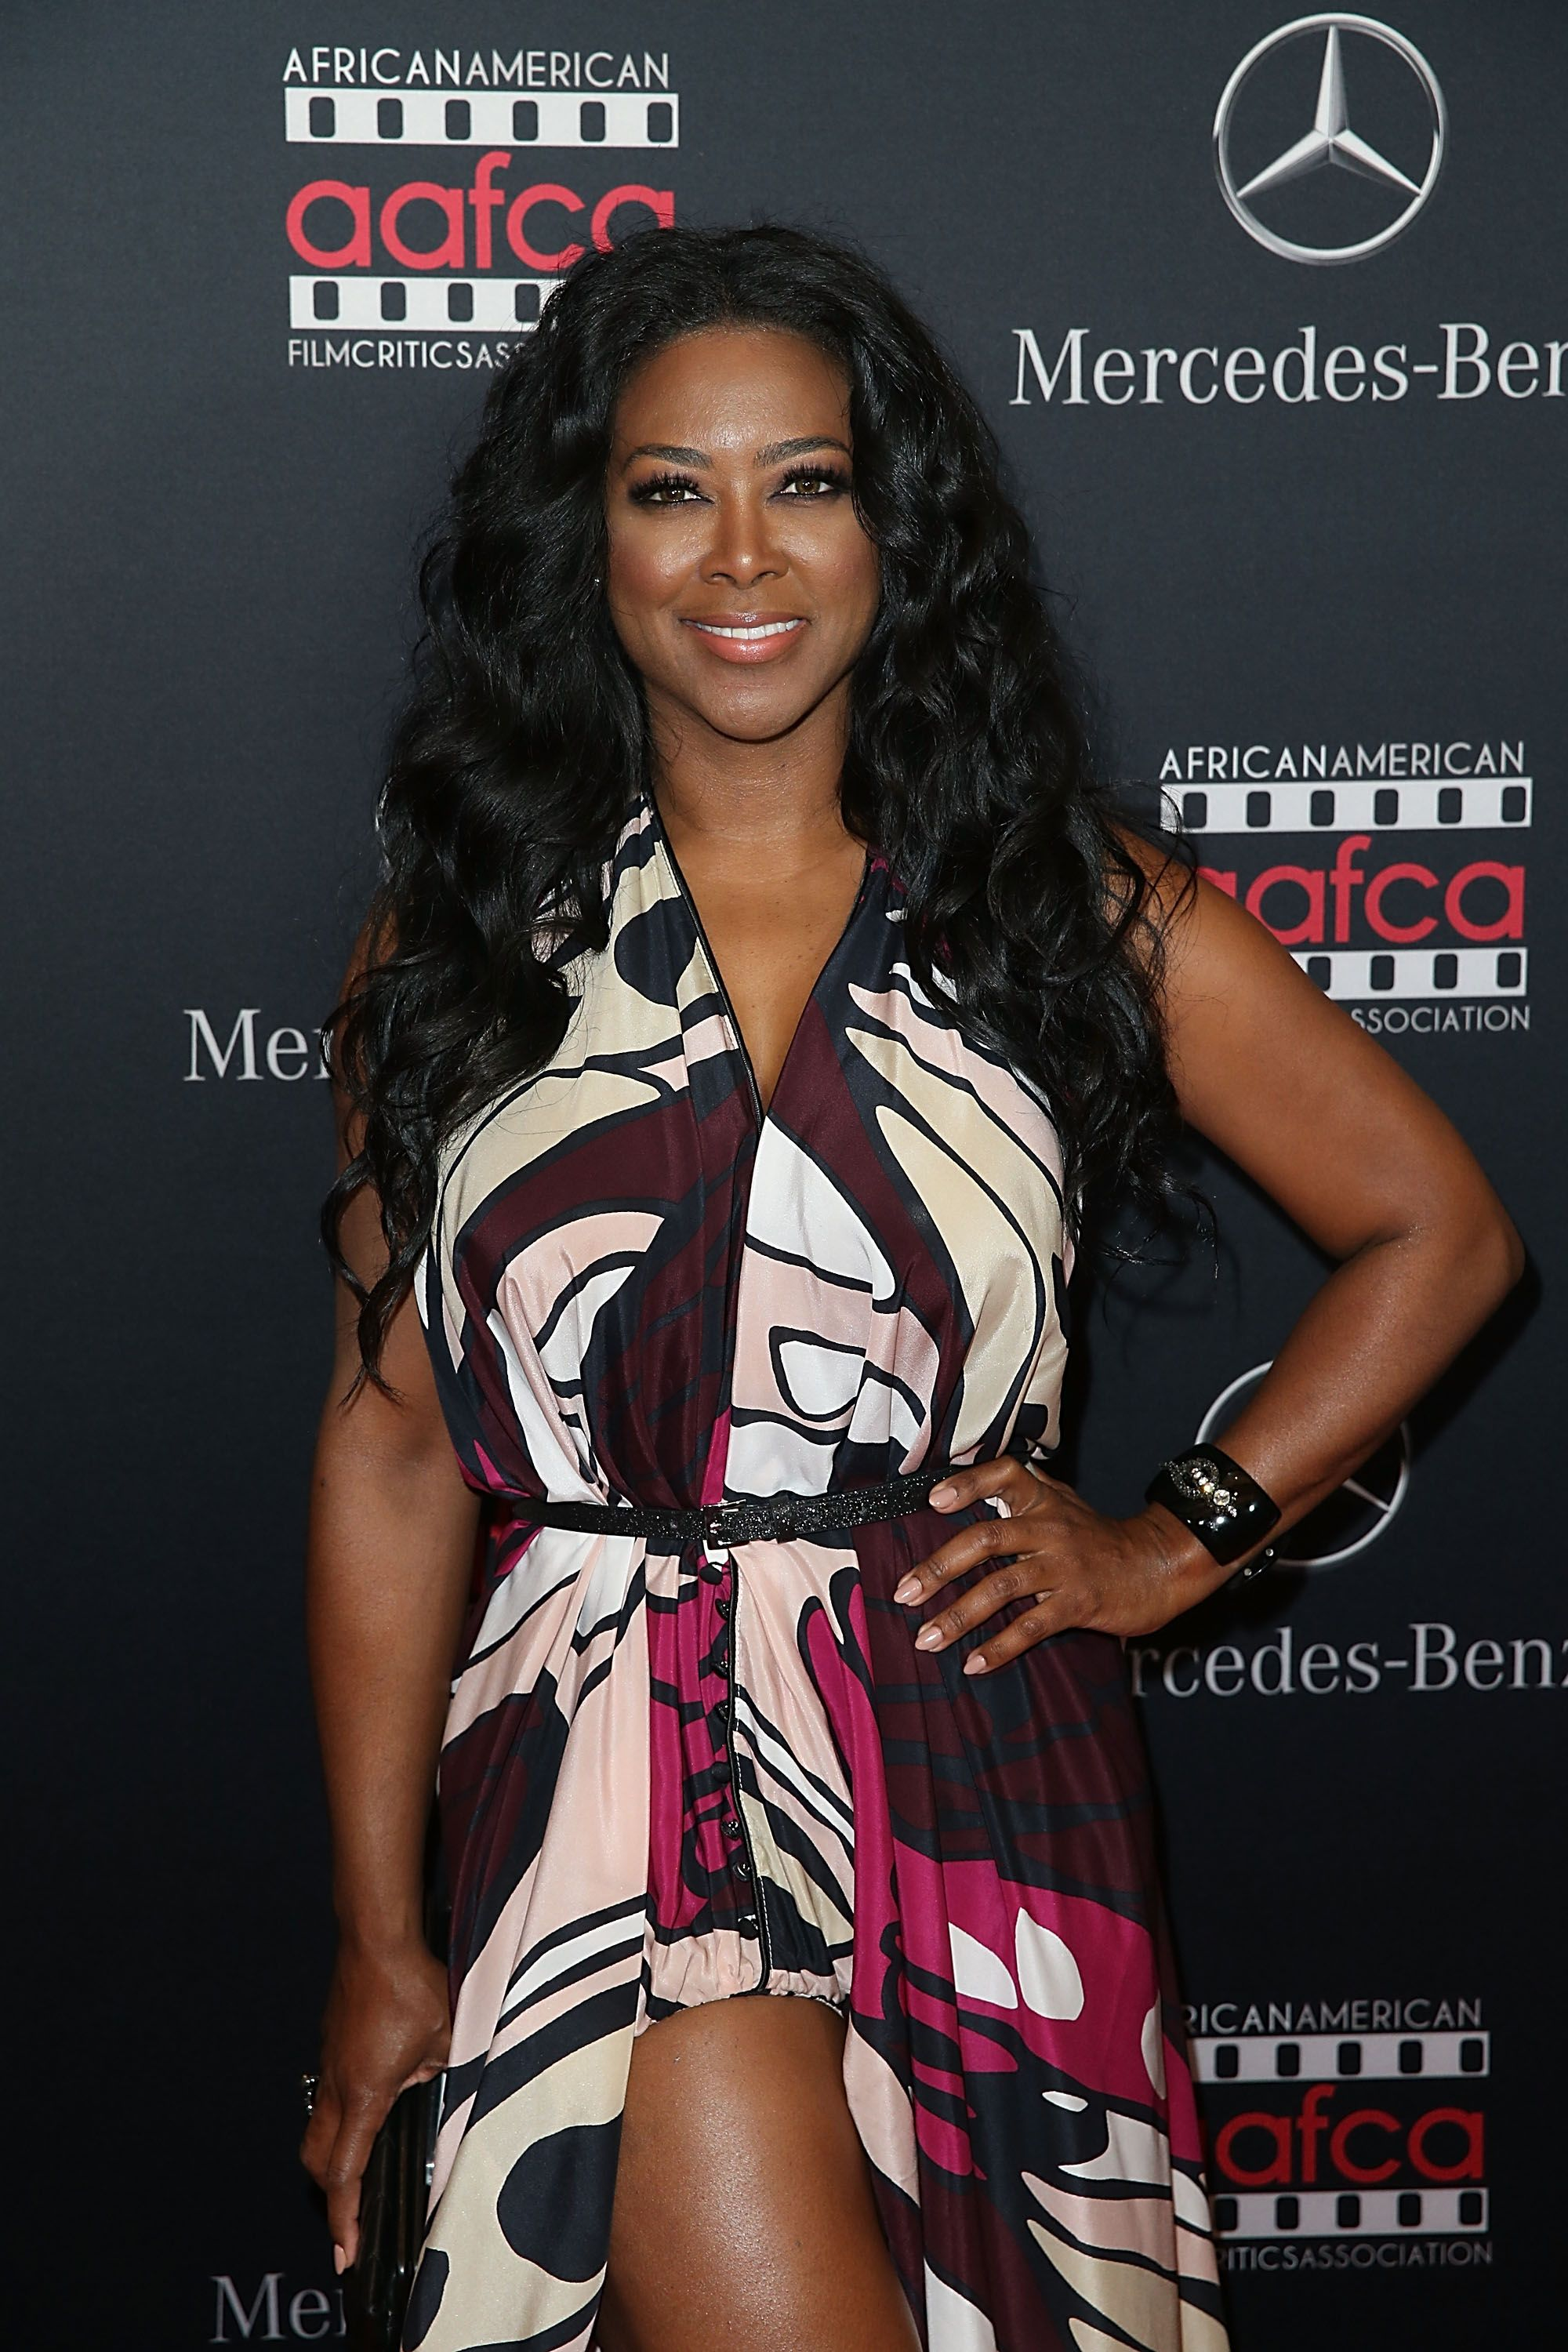 Kenya Moore during the Mercedes-Benz and African American Film Critics Association Oscars viewing party at Four Seasons Hotel Beverly Hills on February 28, 2016 in Los Angeles, California. | Source: Getty Images